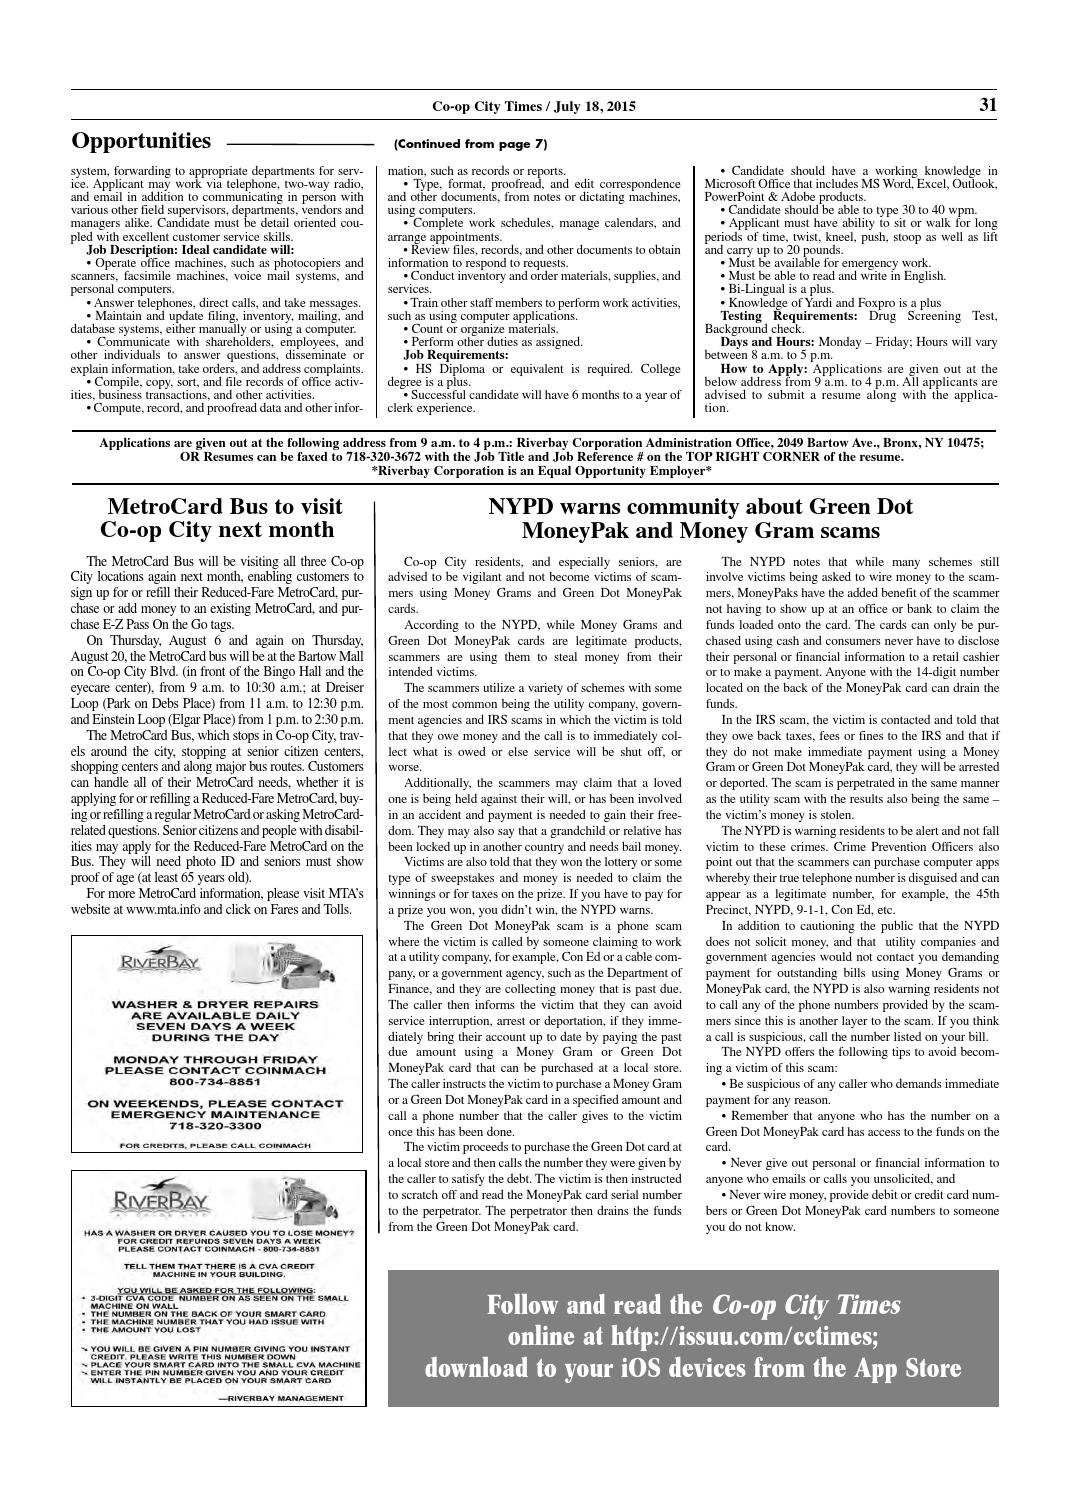 Co-op City Times 07/18/15 by Co-op City Times - issuu